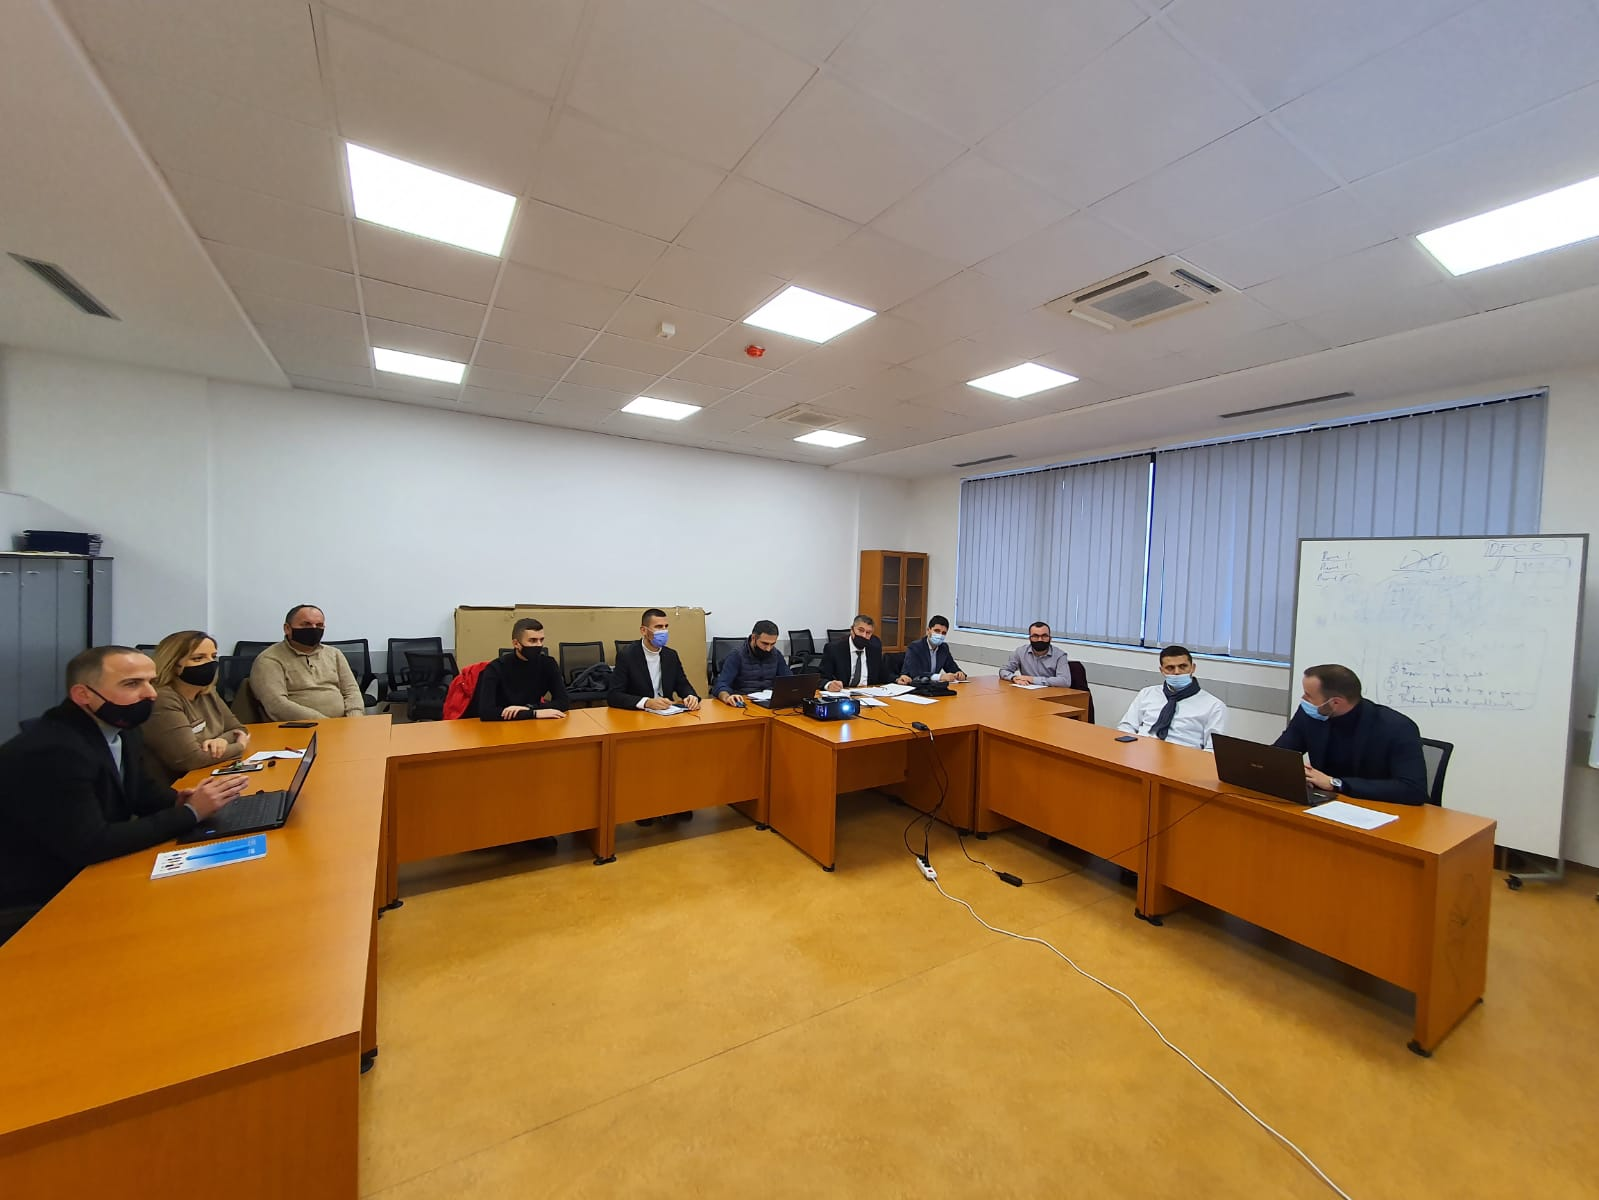 At the Faculty of Law, the Working Group for drafting the Self-Evaluation Report for the bachelor program held its next meeting